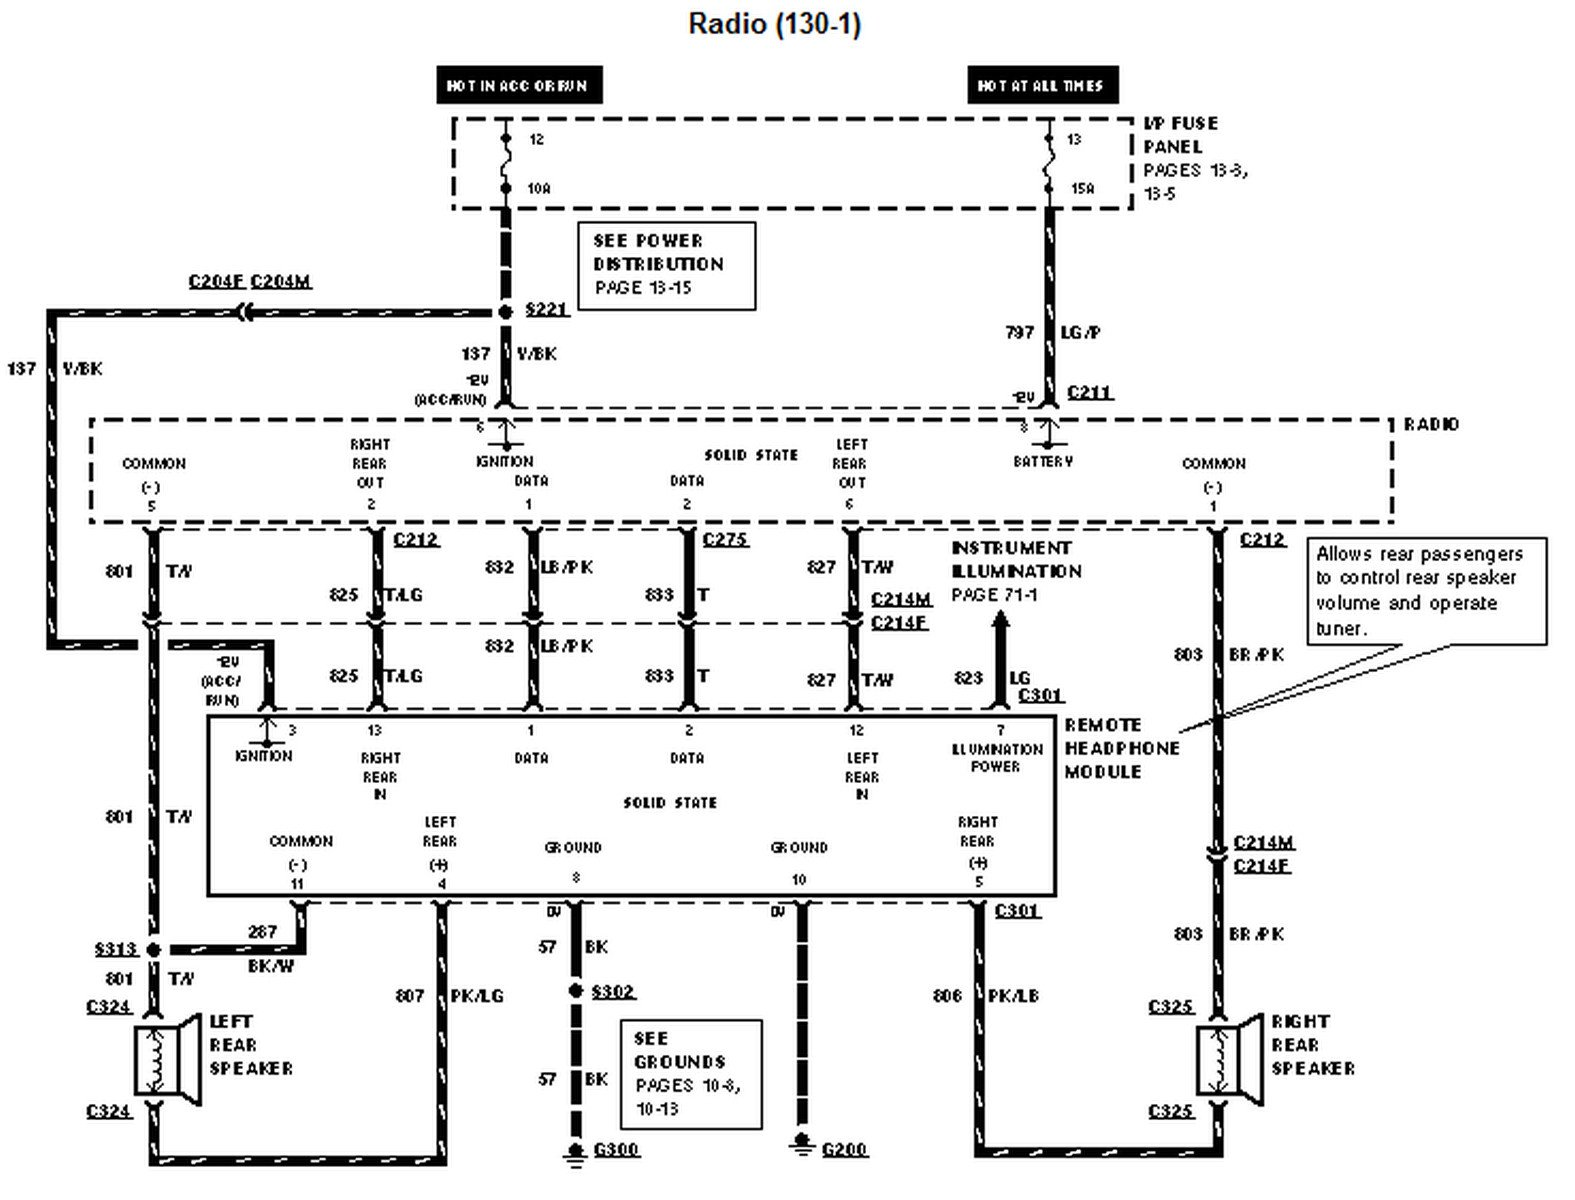 1998 Toyota Camry Radio Wiring Diagram from ww2.justanswer.com